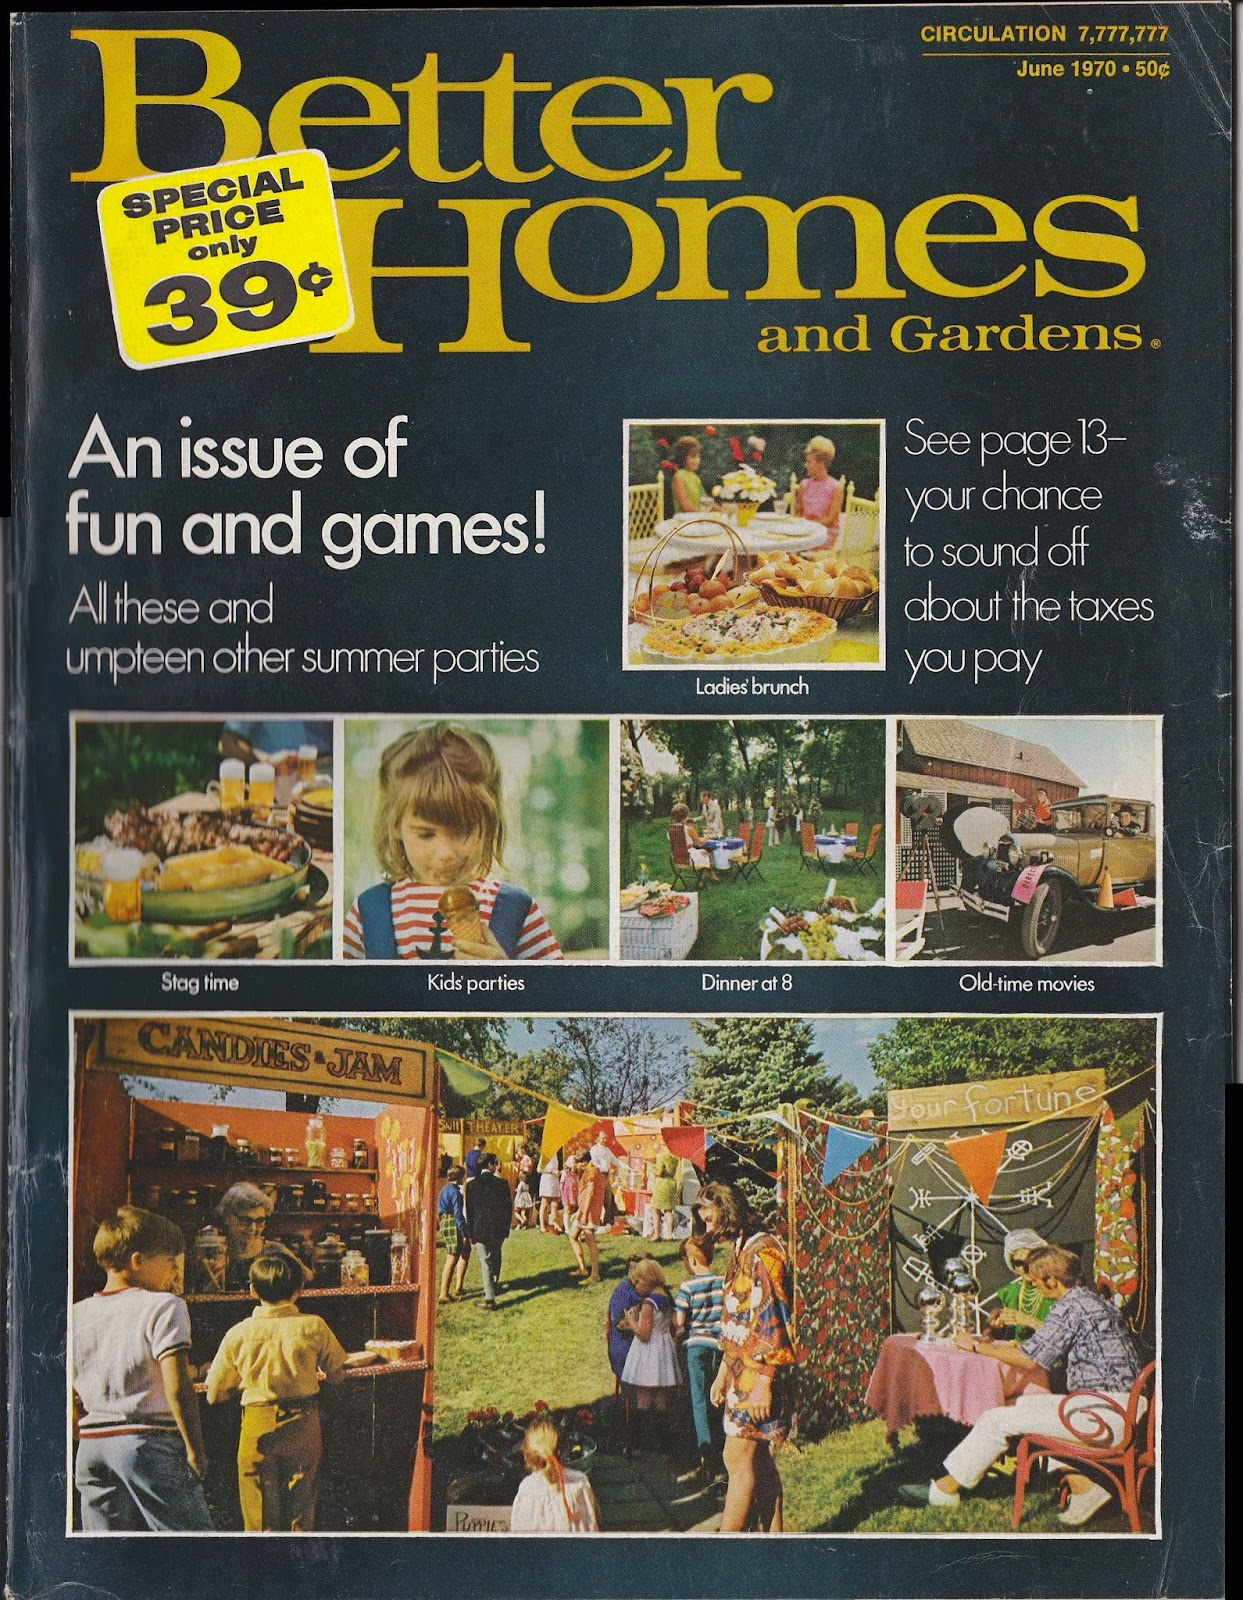 Garage sale finds better homes and gardens june 1970 - Better homes and gardens homes for sale ...